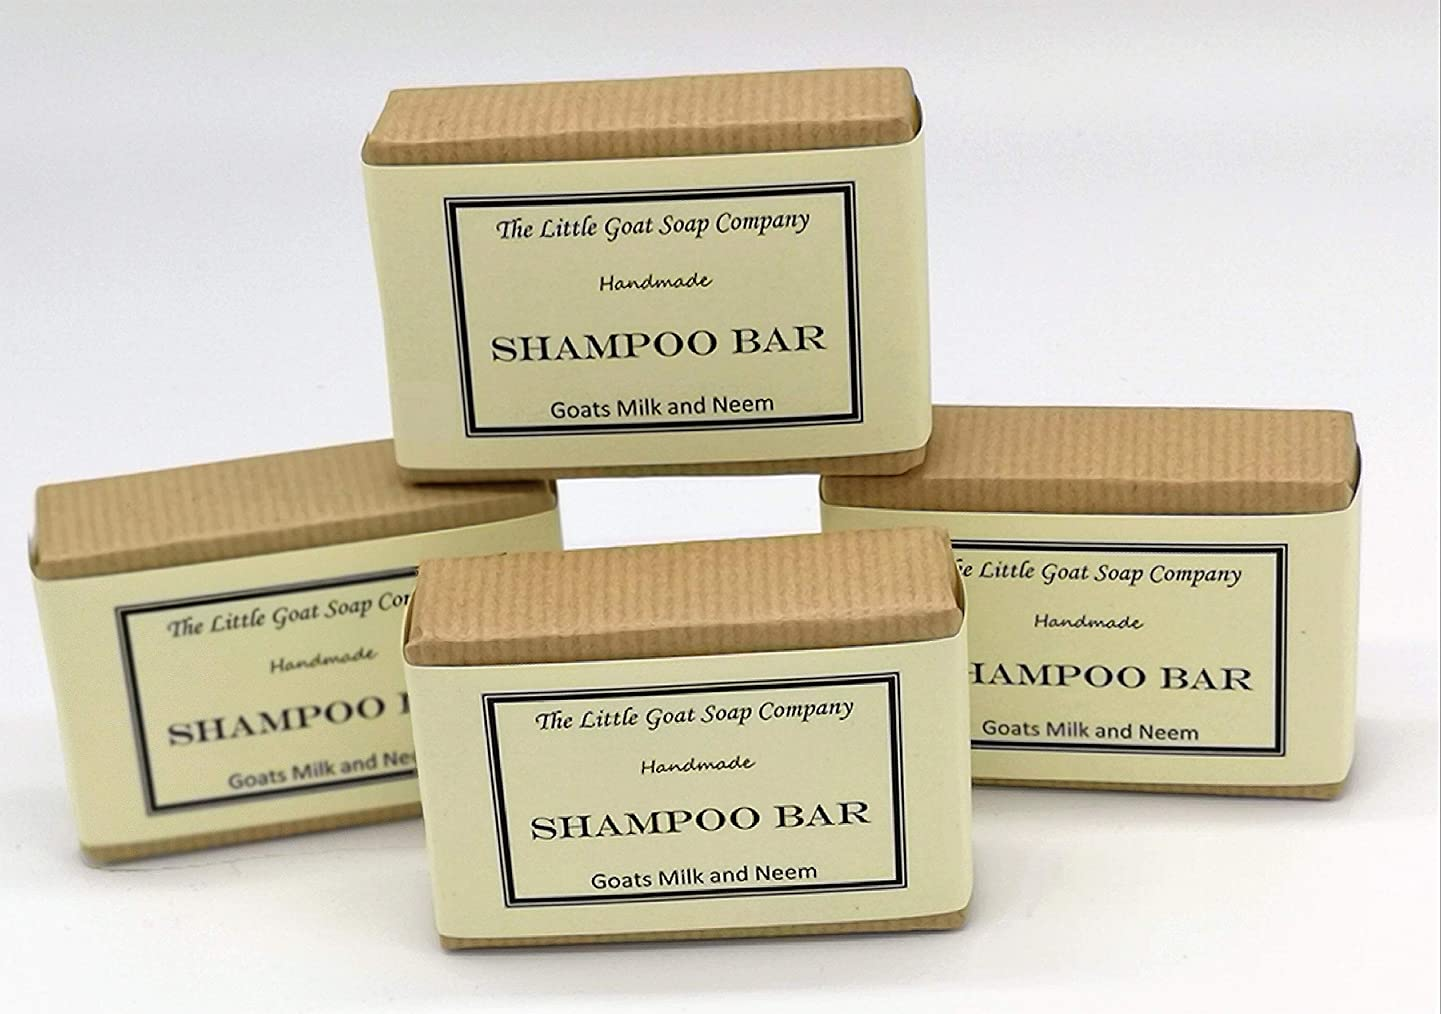 フォーマル旋律的文化Shampoo Bar - Goats Milk and Neem Oil 4 x 100G by The Little Goat Soap Company